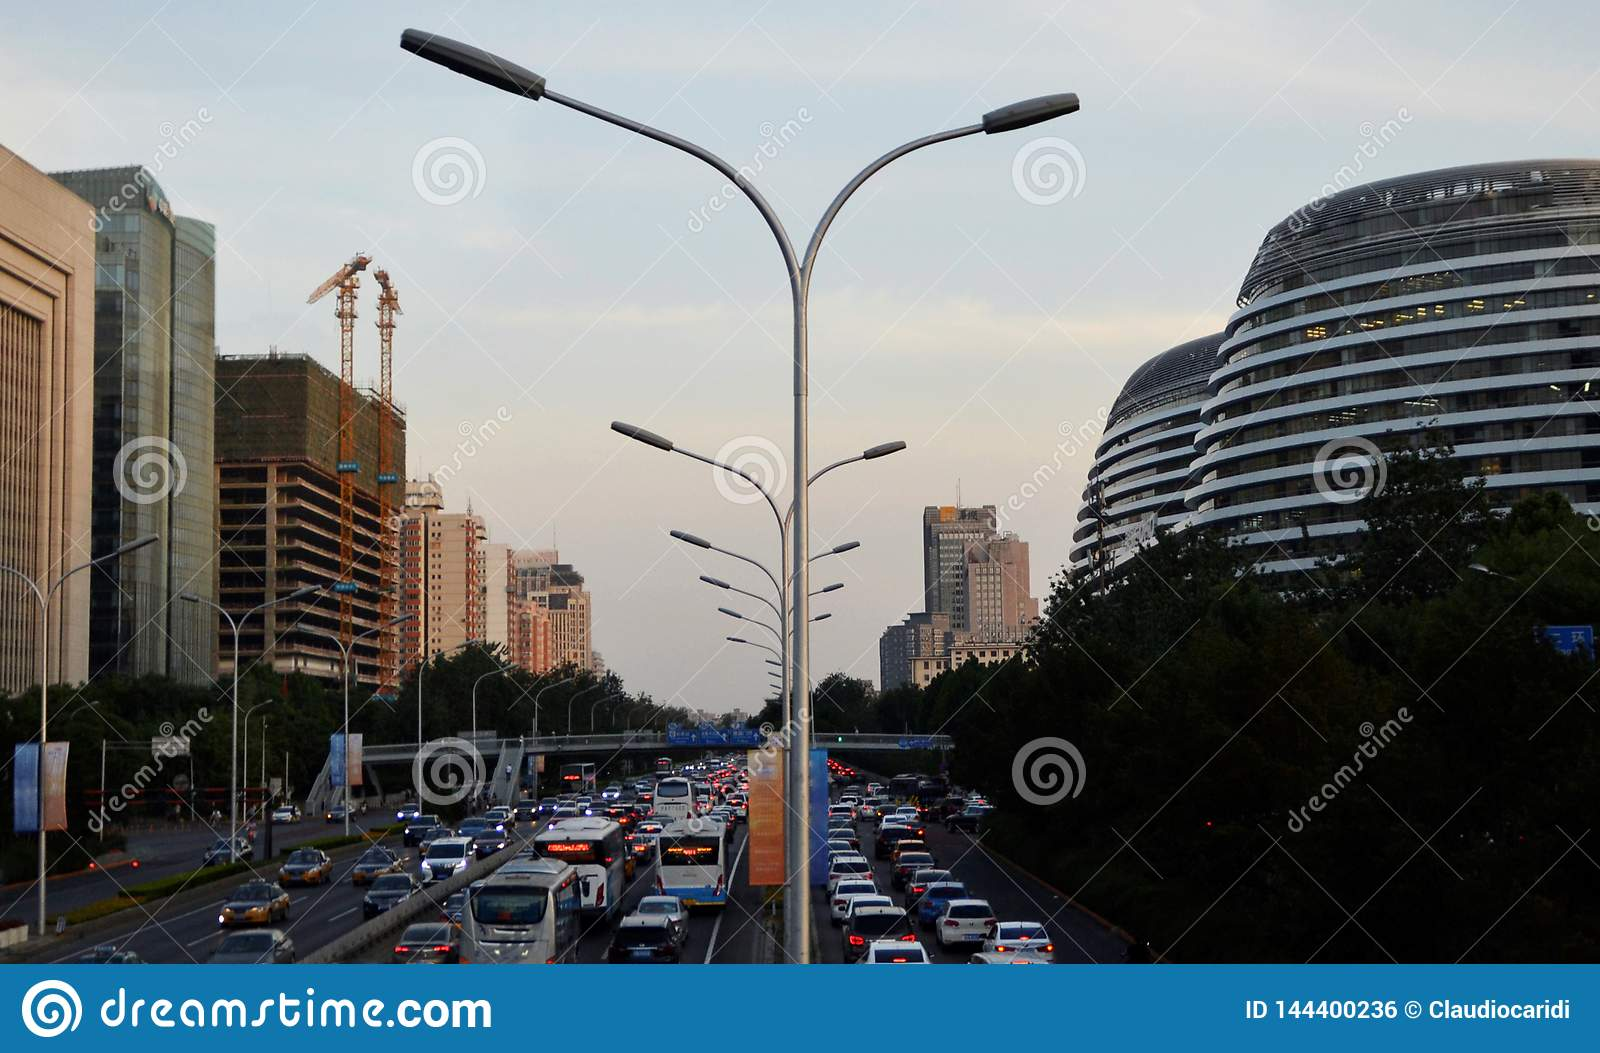 Landscape of modern city, Beijing, China